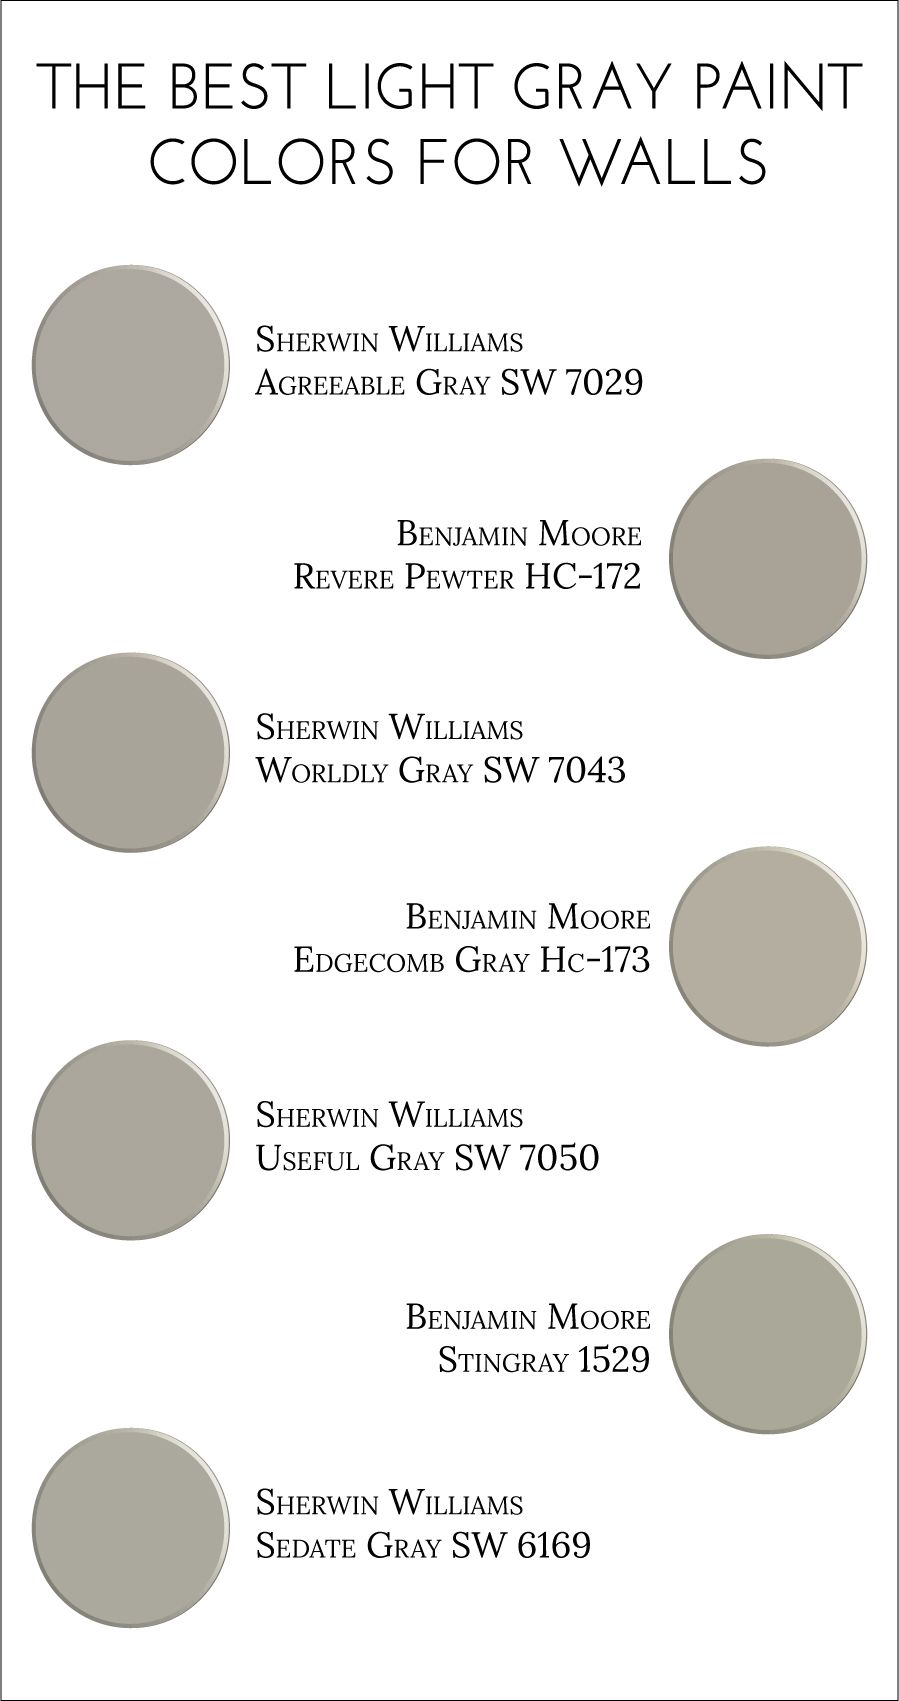 the best light gray paint colors for walls light grey